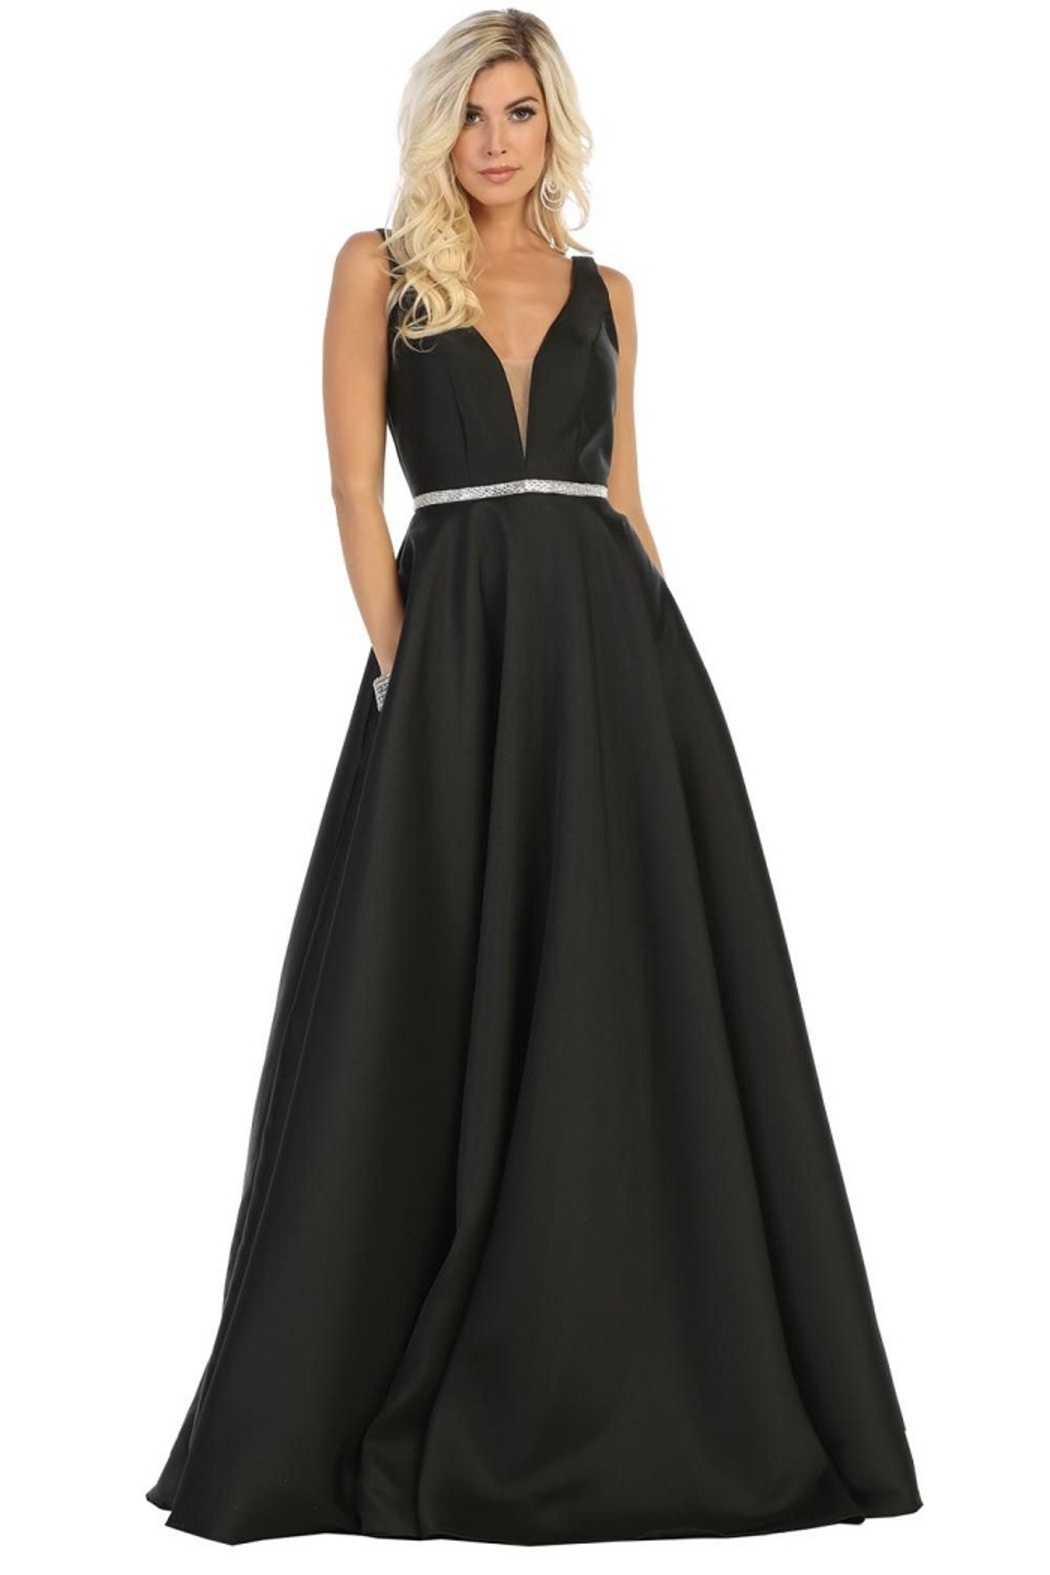 May Queen  Black Satin A-Line Formal Ball Gown - Front Cropped Image